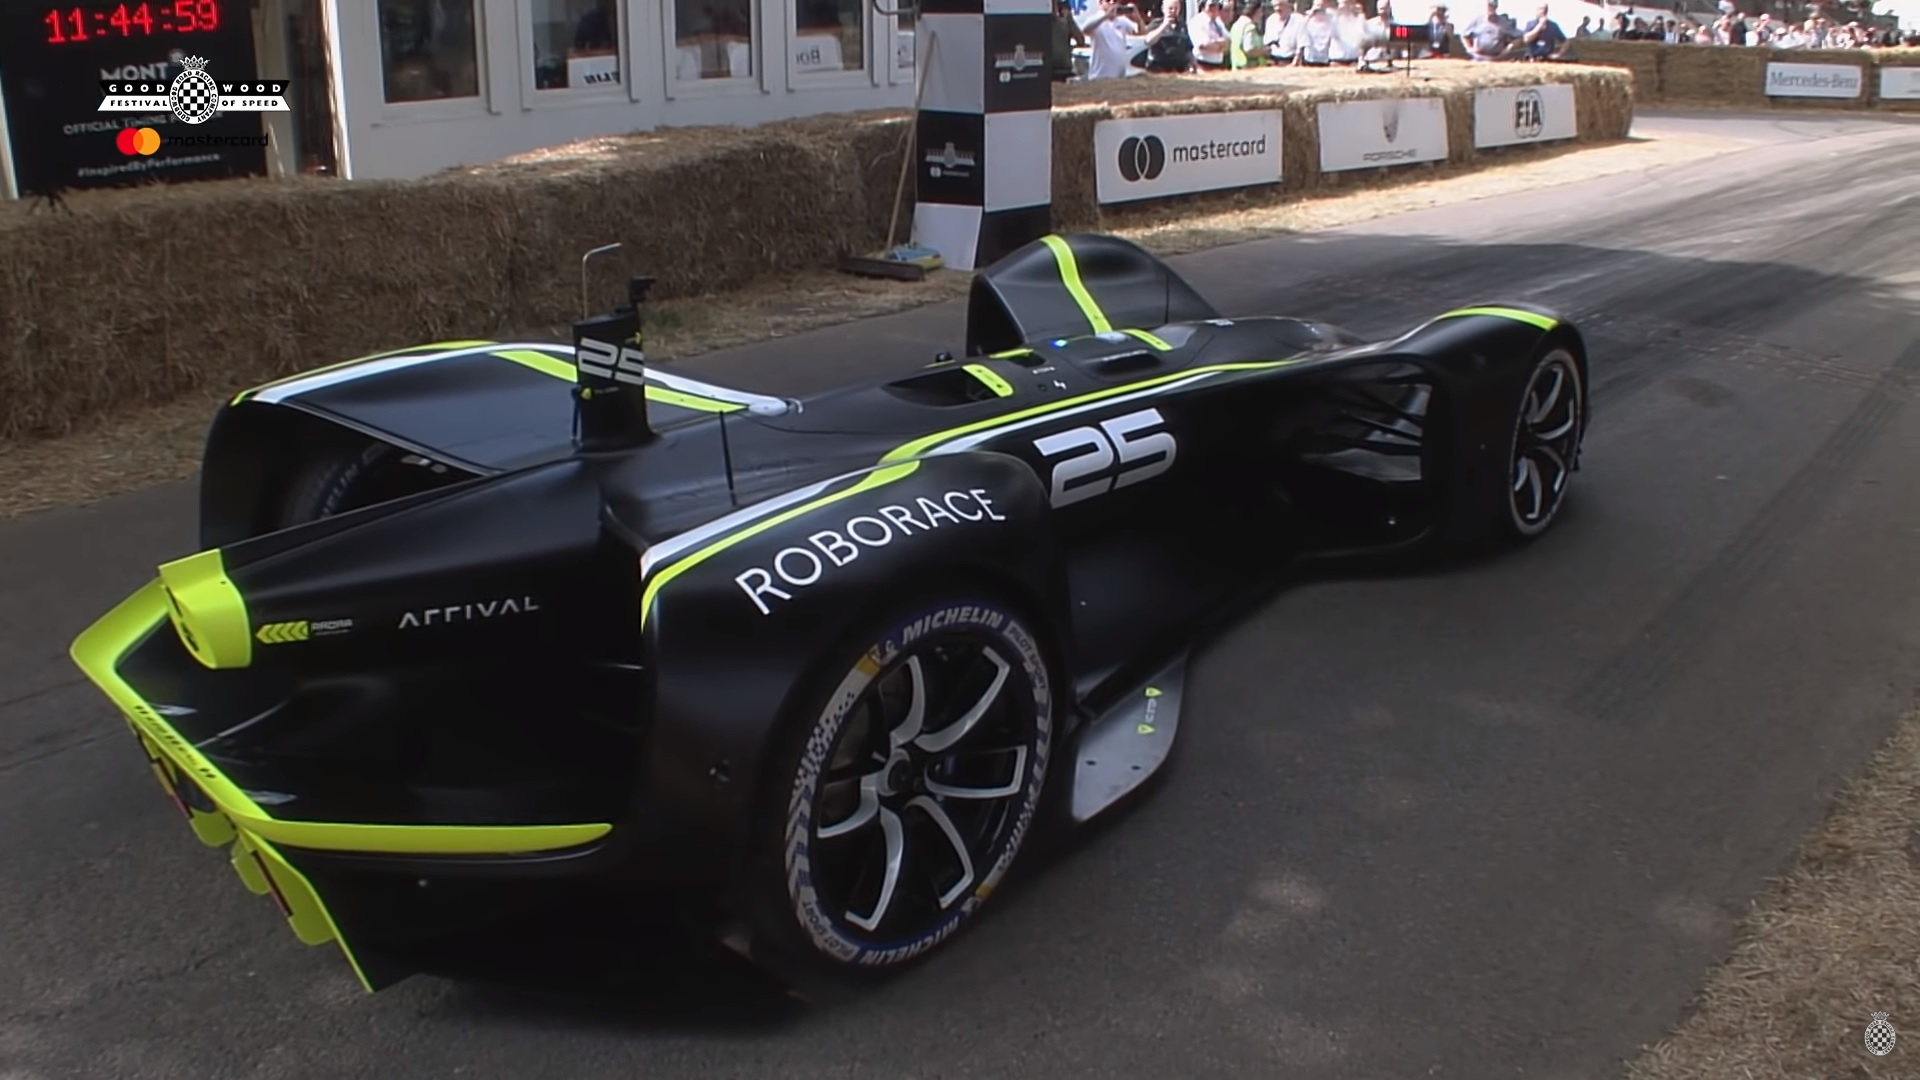 Best Used Sports Cars >> Roborace DevBot Completes Goodwood Hillclimb Without A Driver (Video) | Top Speed